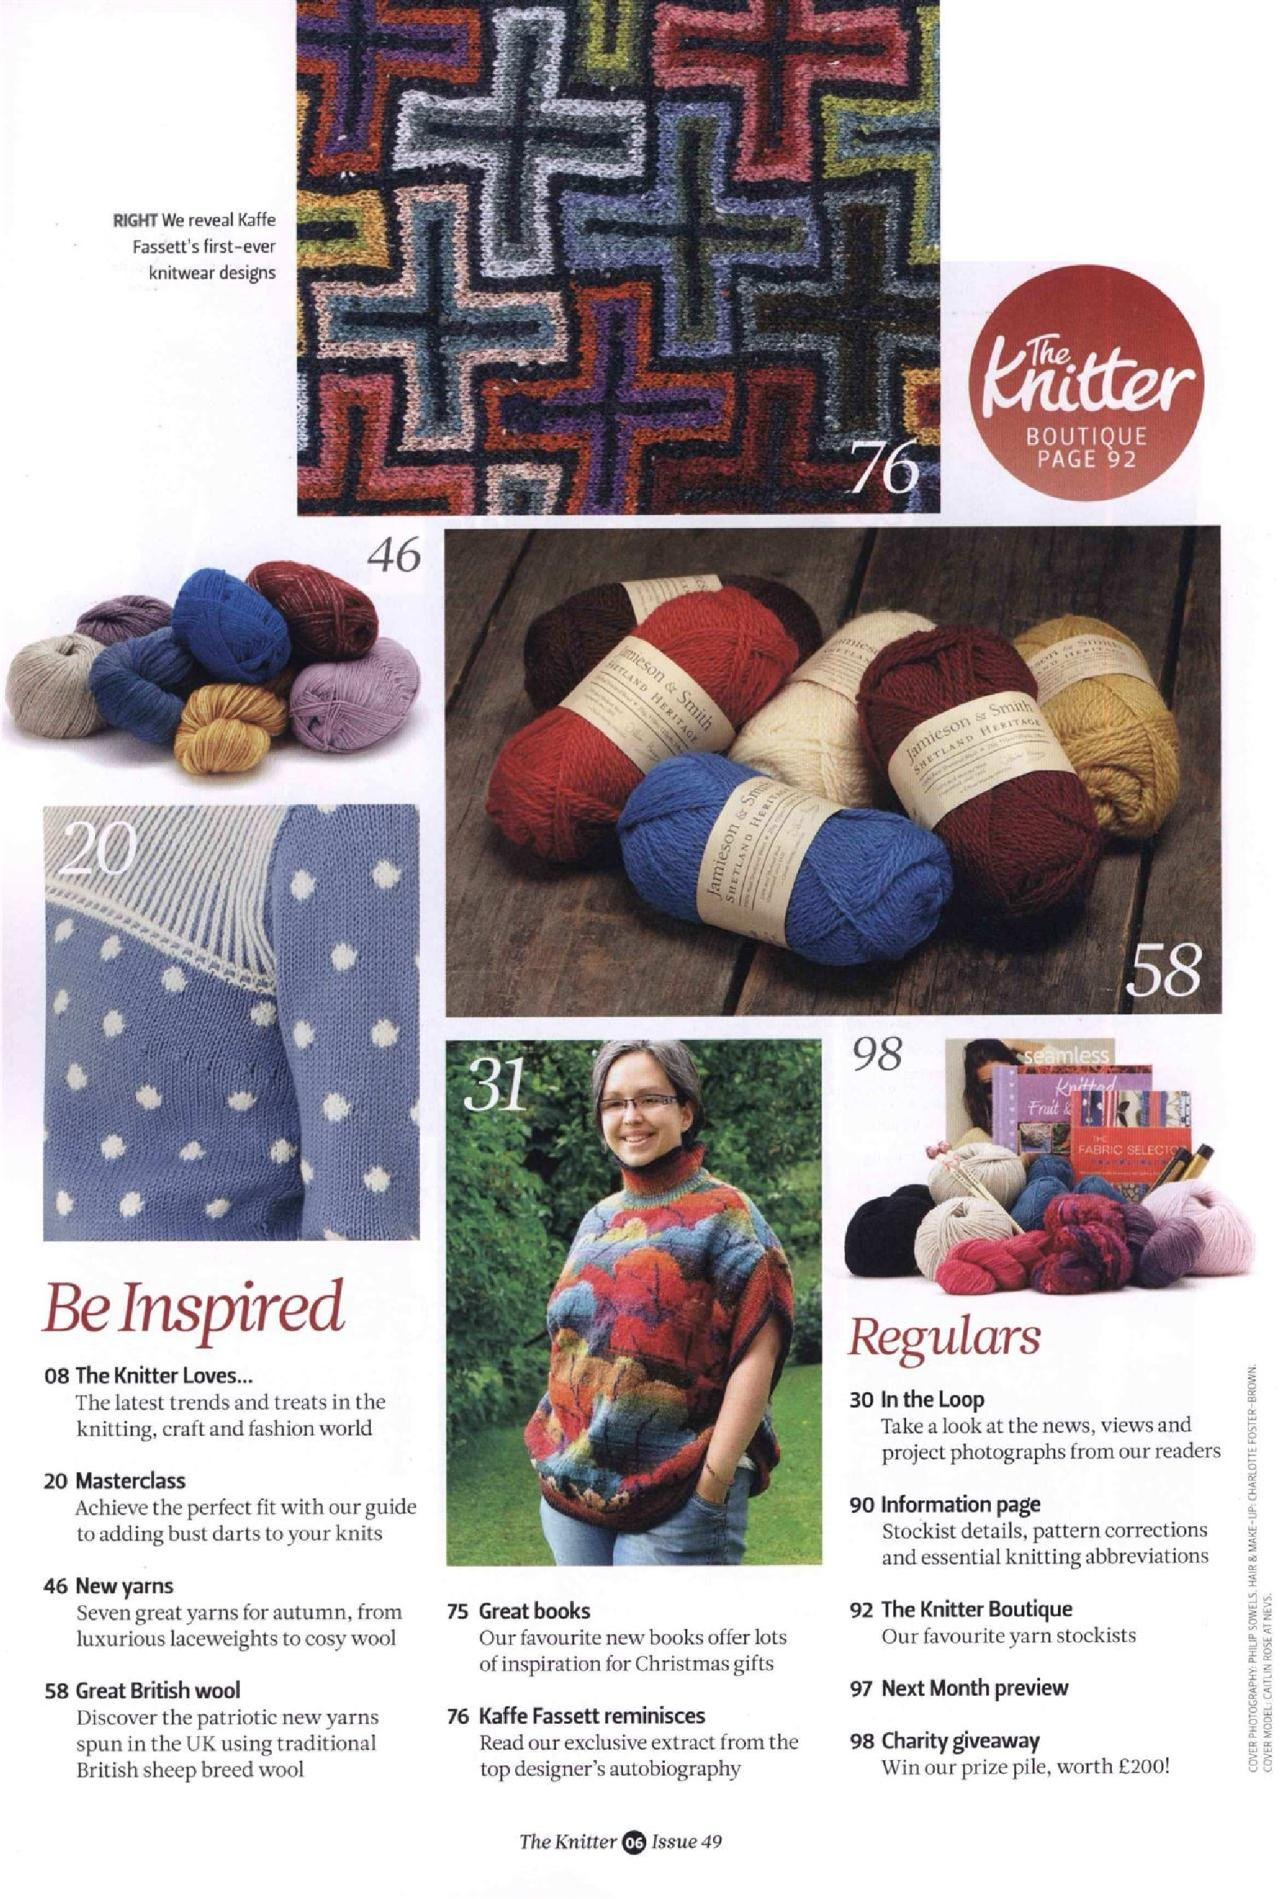 the-knitter-issue-49-2012(3).jpeg